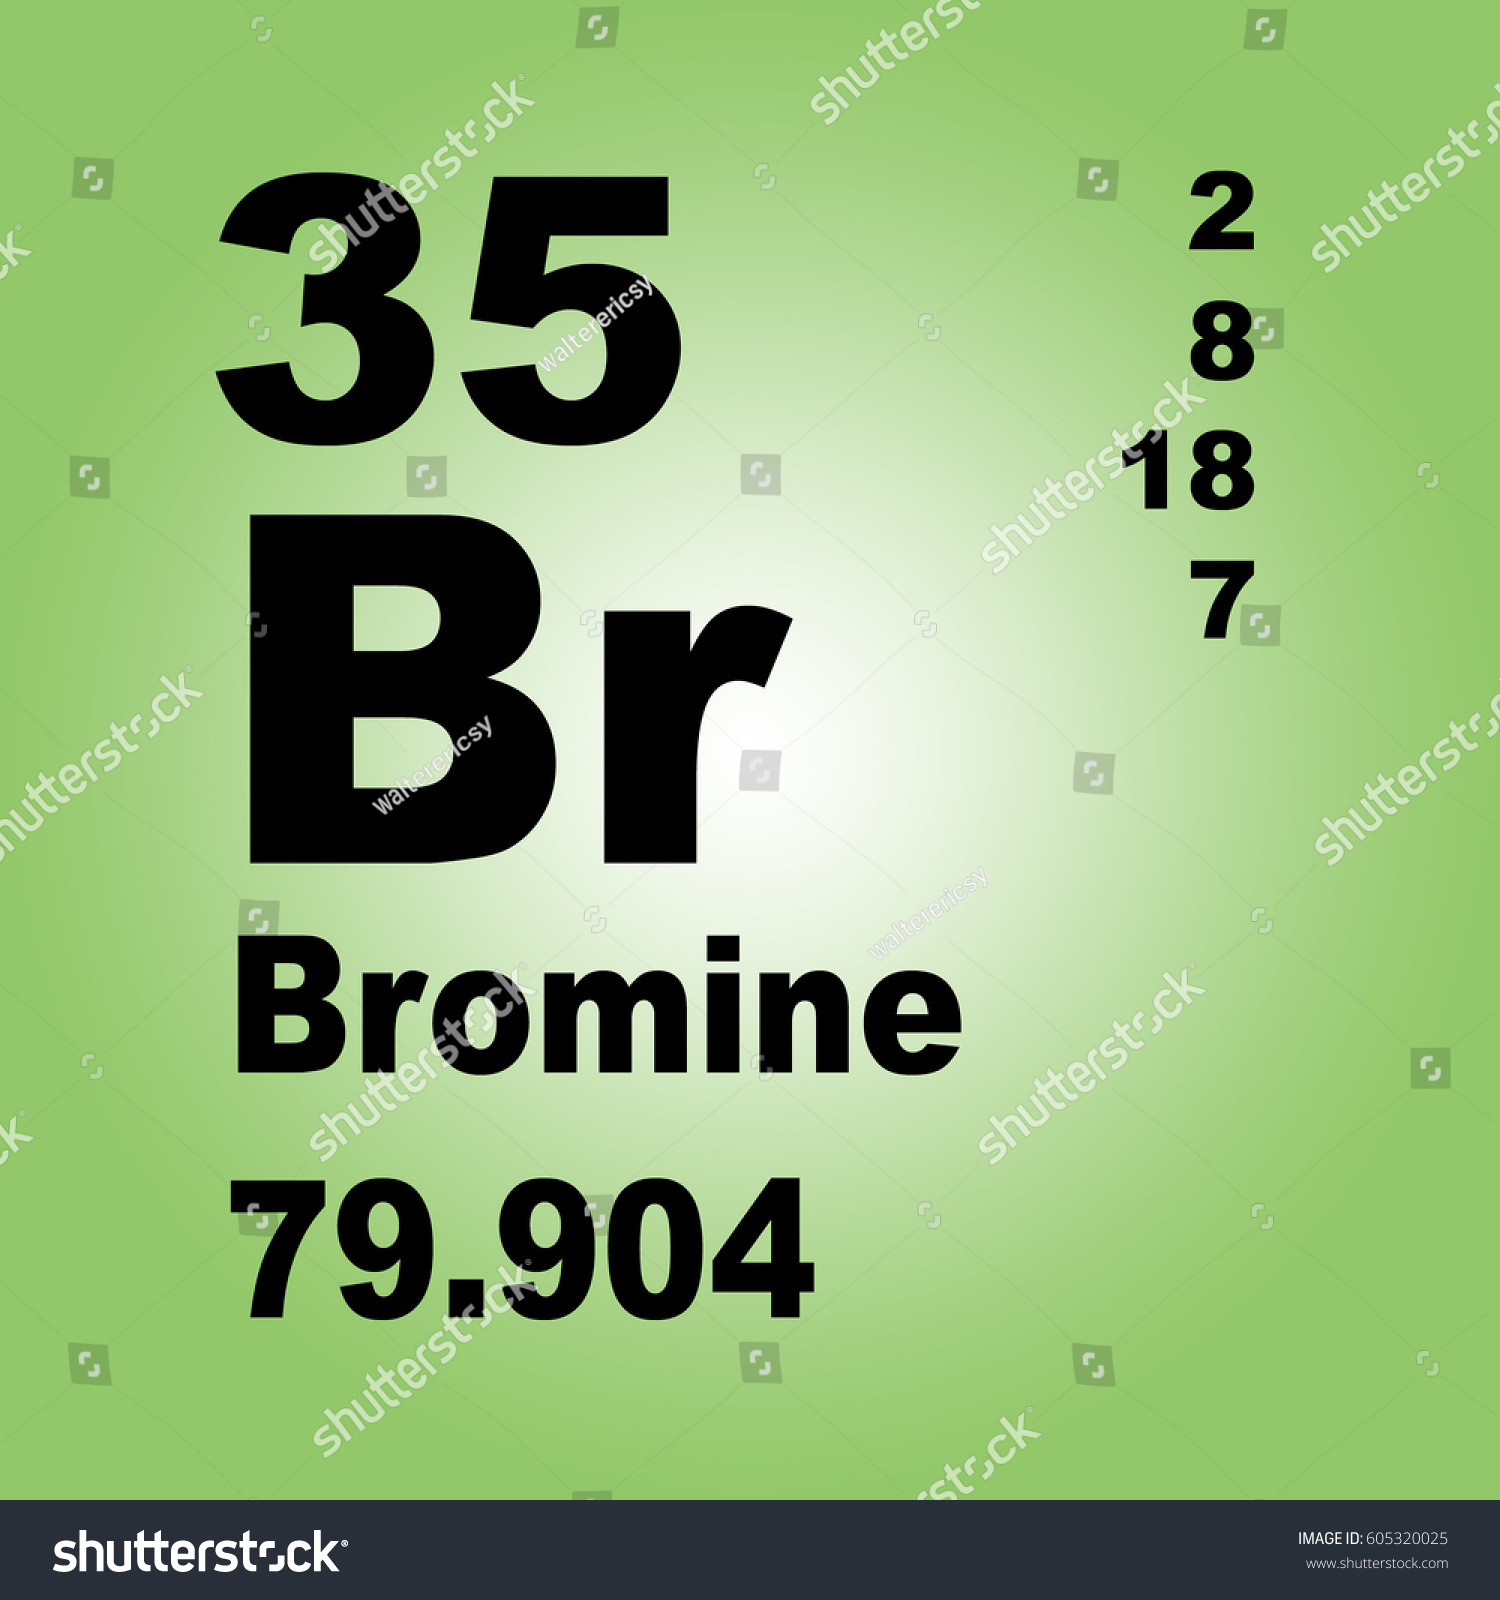 Bromine periodic table elements stock illustration 605320025 bromine periodic table of elements gamestrikefo Image collections